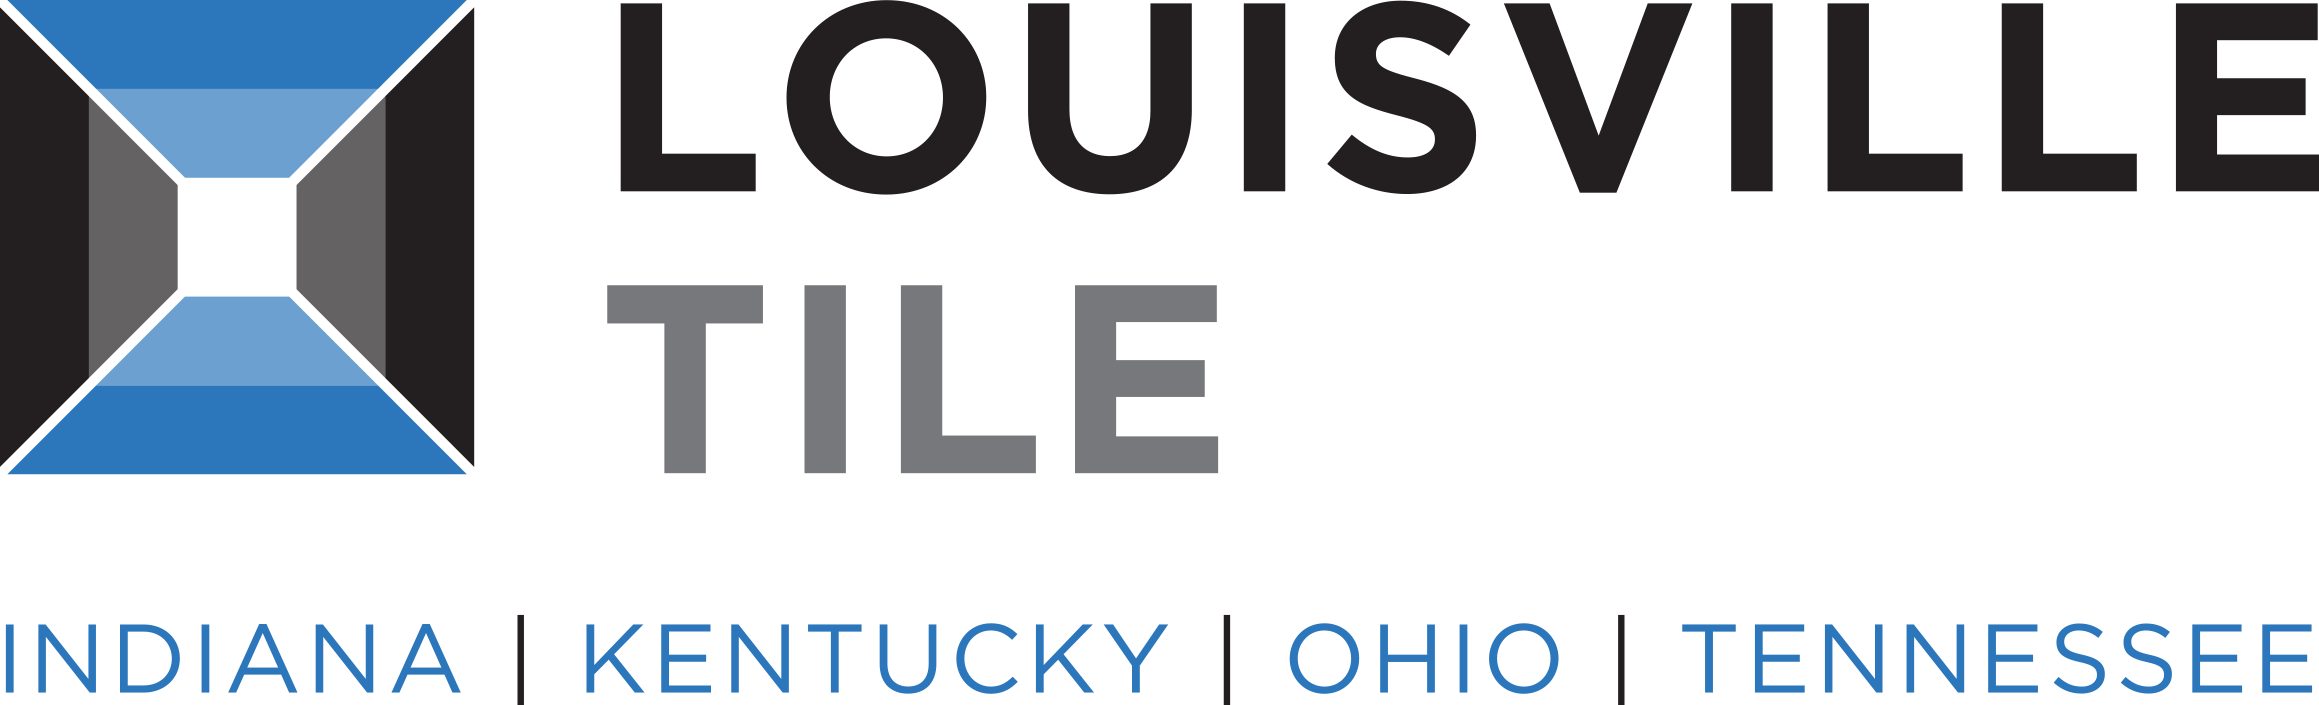 Tile Showroom | Lexington, Kentucky - Louisville Tile